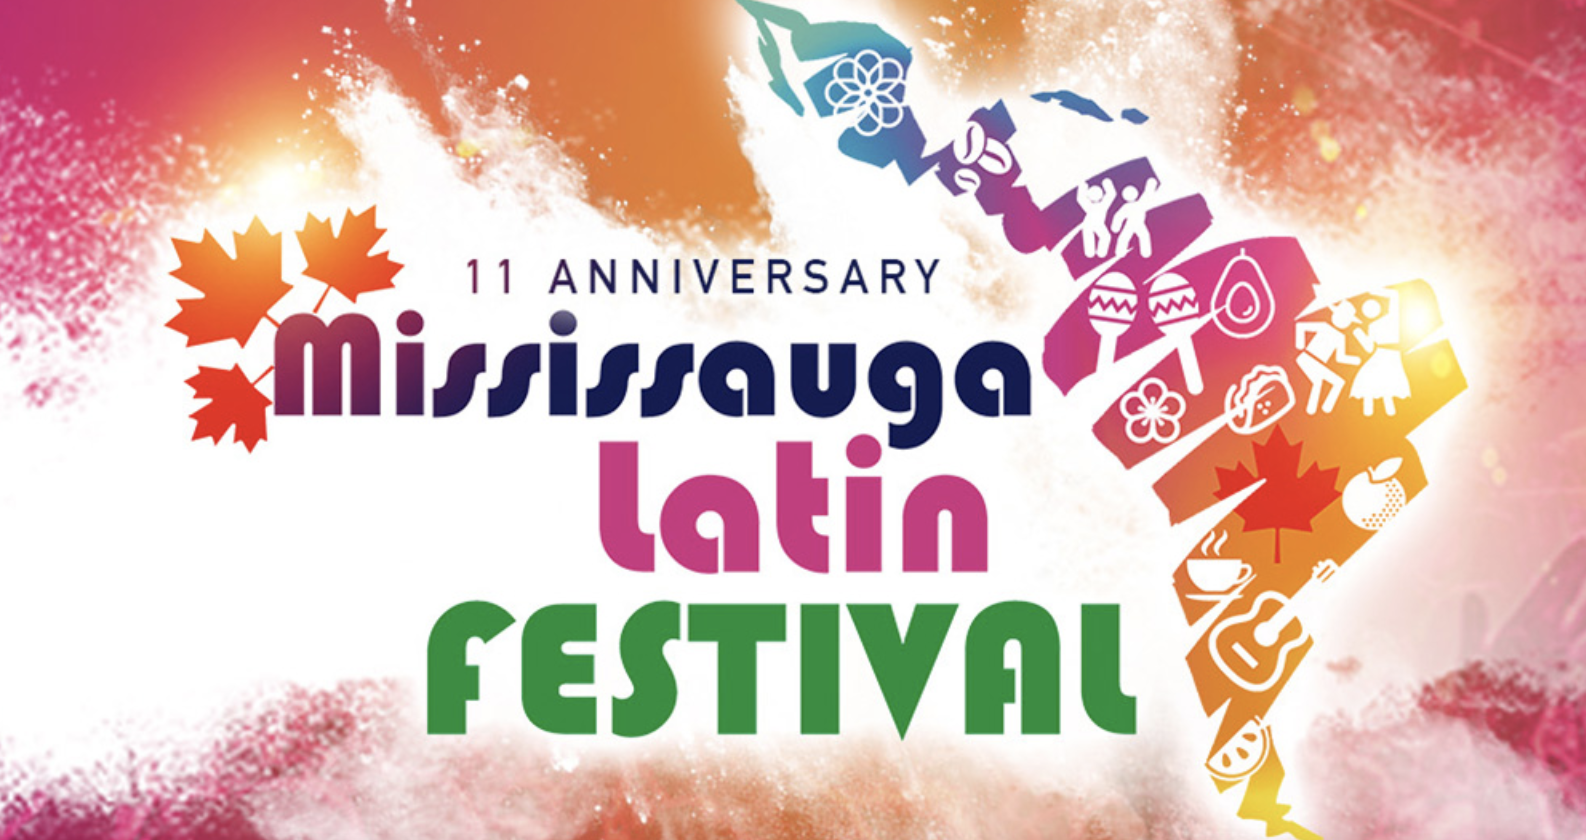 11th Mississauga Latin Festival welcomes TorresTornerARTprojects…